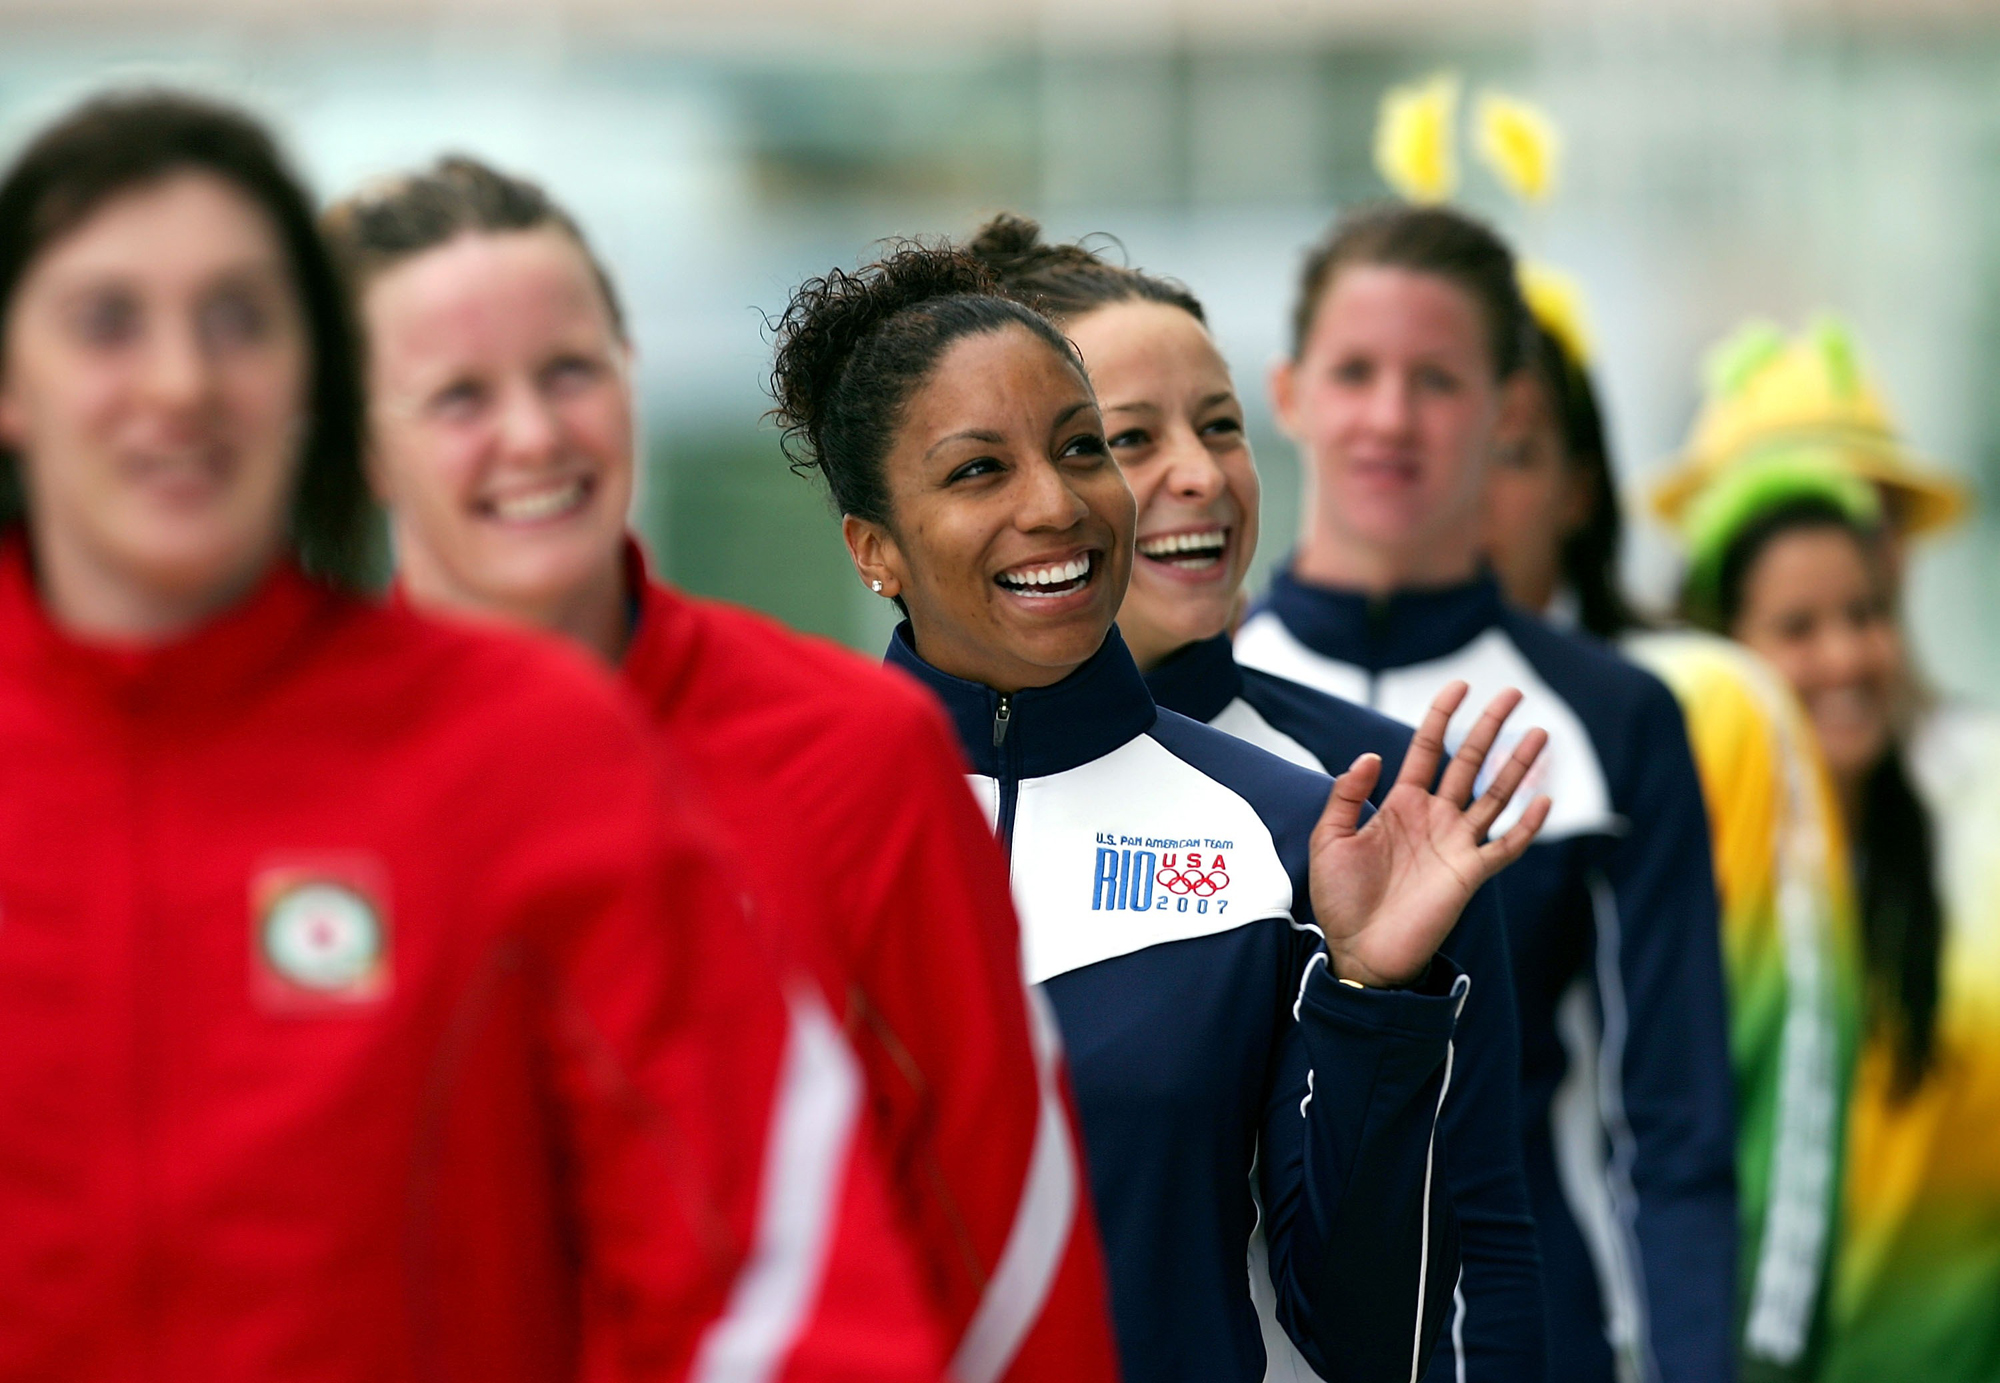 Maritza Correia of the United States of America smiles with her team after they received their gold medals in the 4x100m Freetstyle at the 2007 XV Pan American Games at the Maracana Stadium on July 19, 2007 in Rio de Janeiro, Brazil.